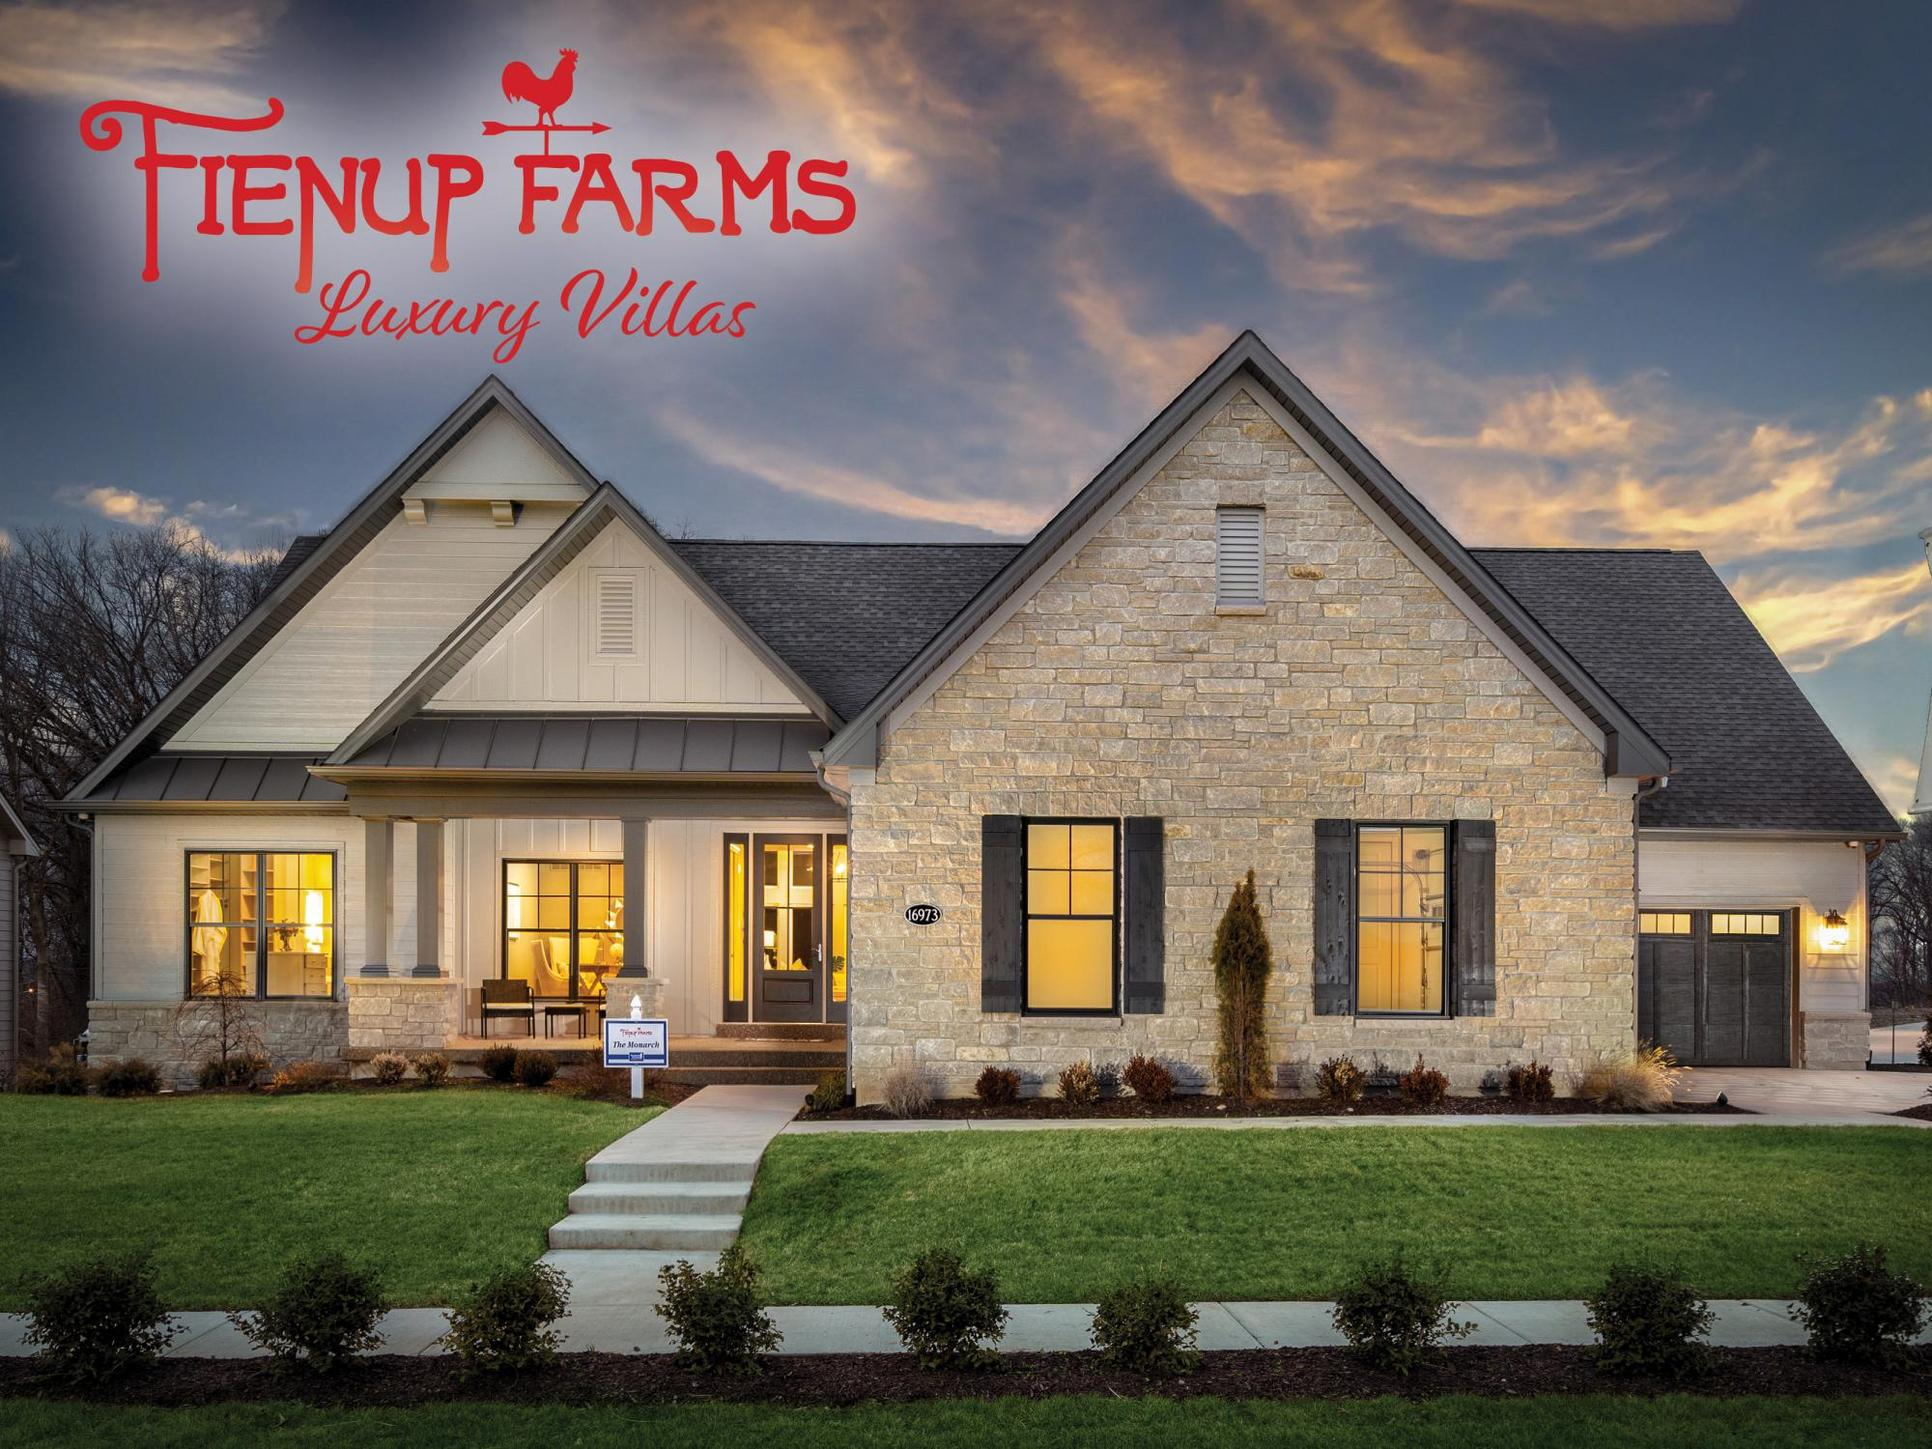 Fienup Farms-Luxury Villas 800x600 2-7-2020